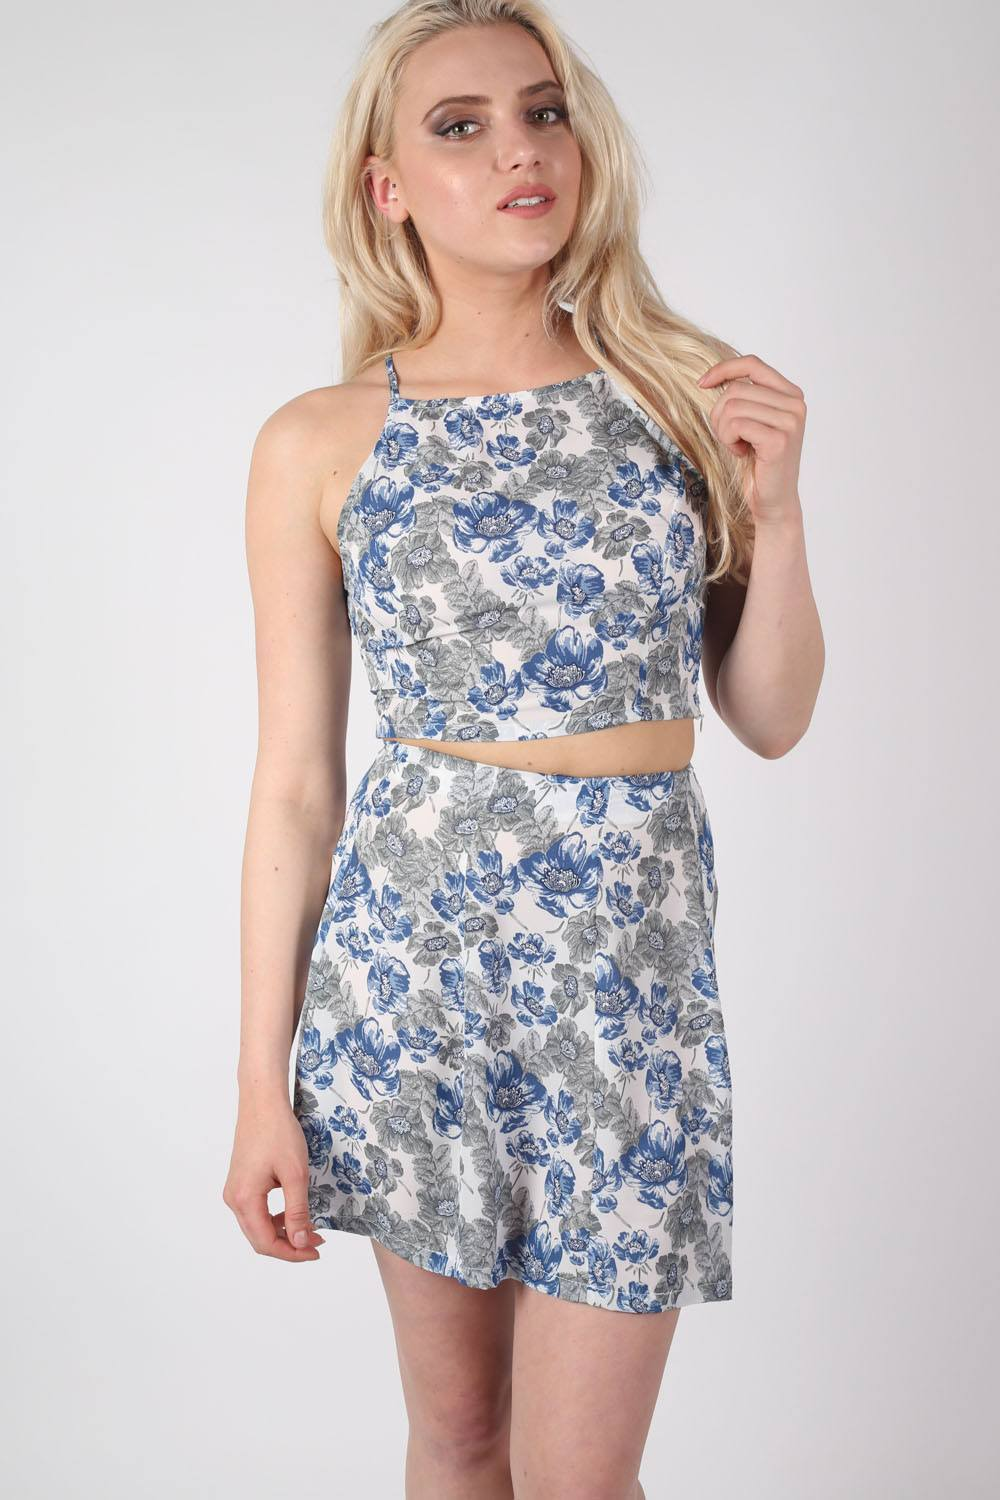 Floral Print Crop Top in Blue 0